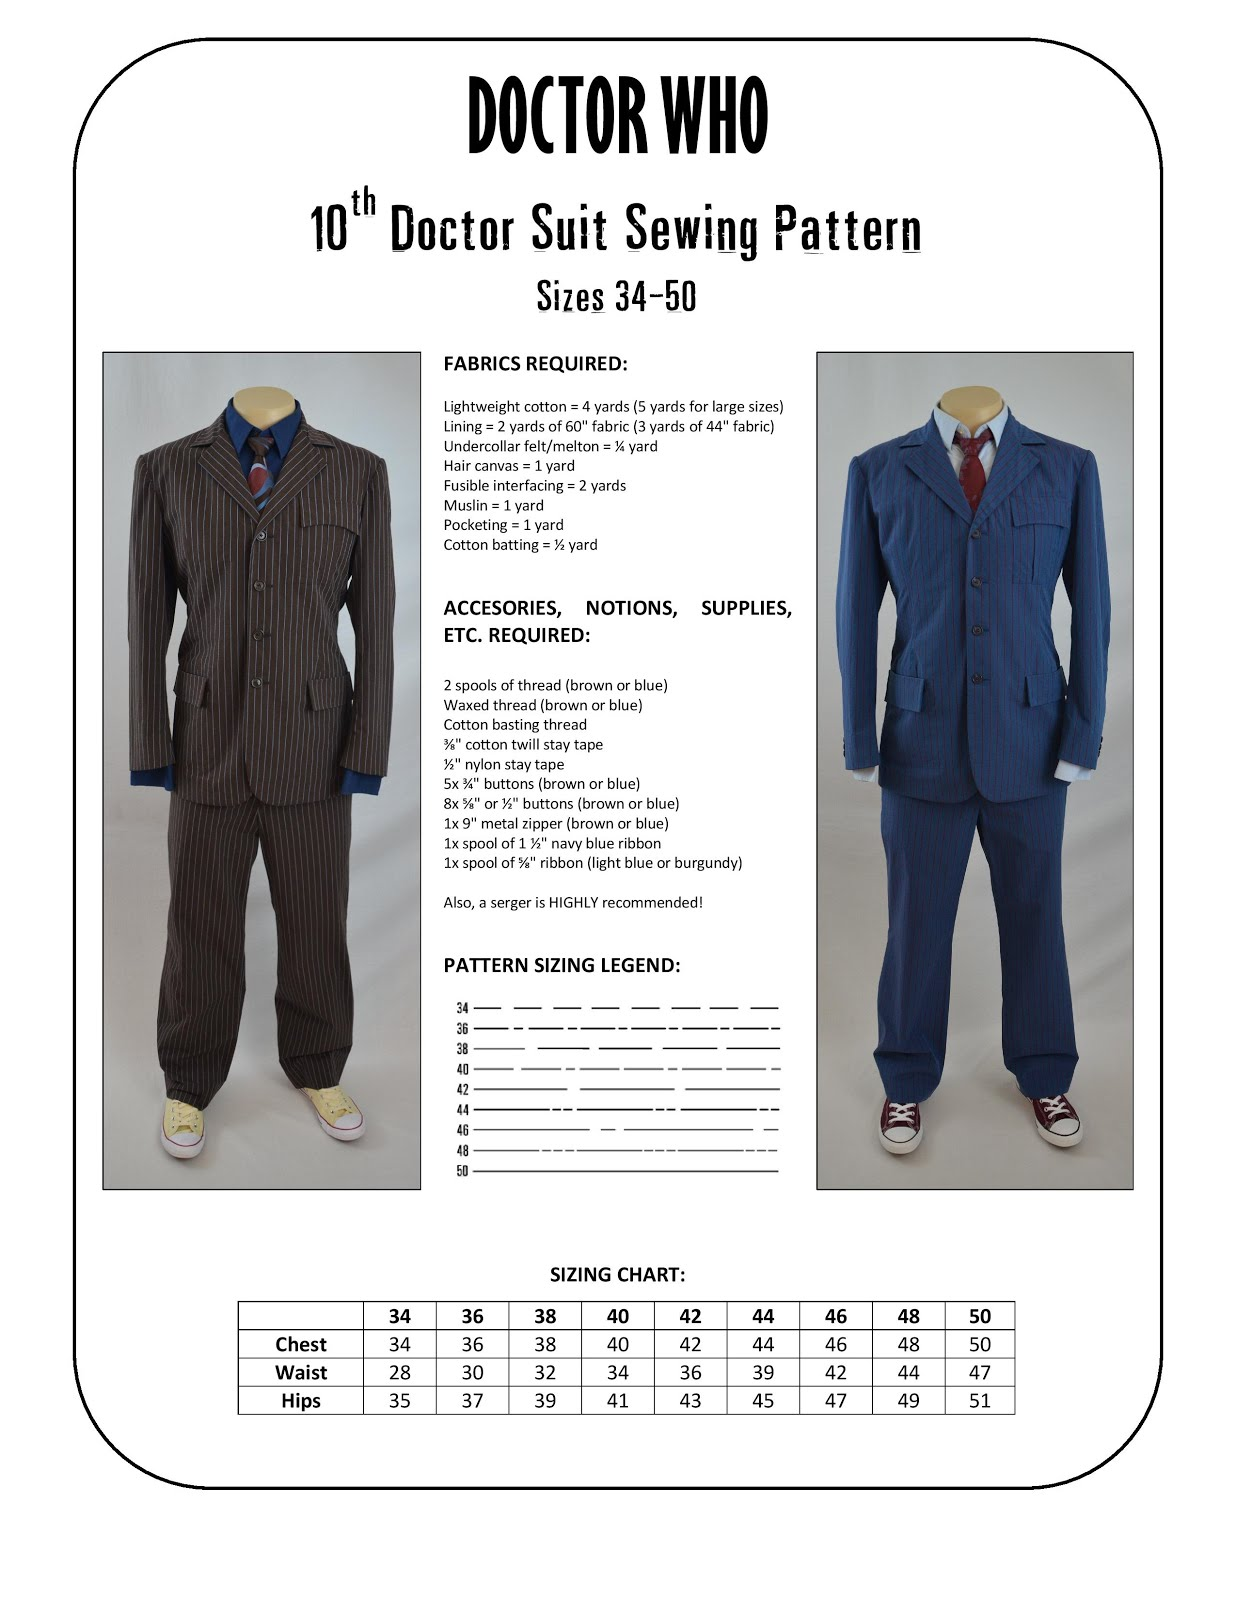 Doctor Who: 10th Doctor Suit Sewing Pattern